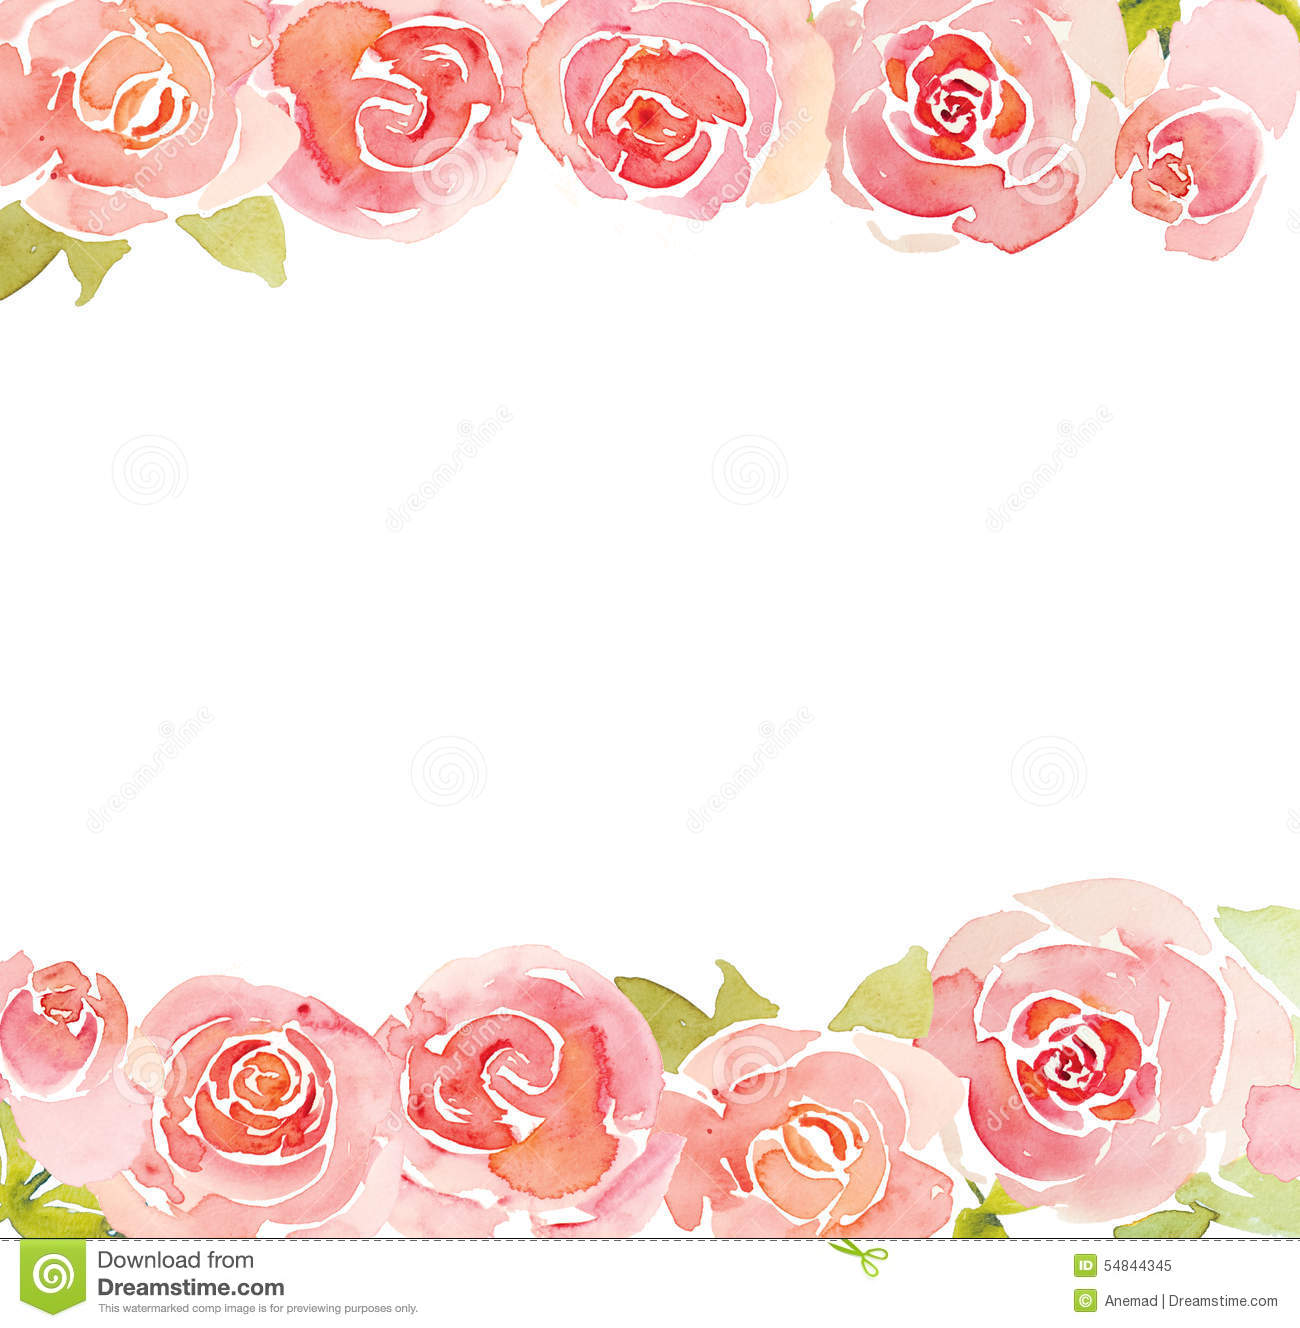 Baby Girl Wallpaper Borders Pink And Purple Pink Roses Flower Watercolor Background Stock Illustration